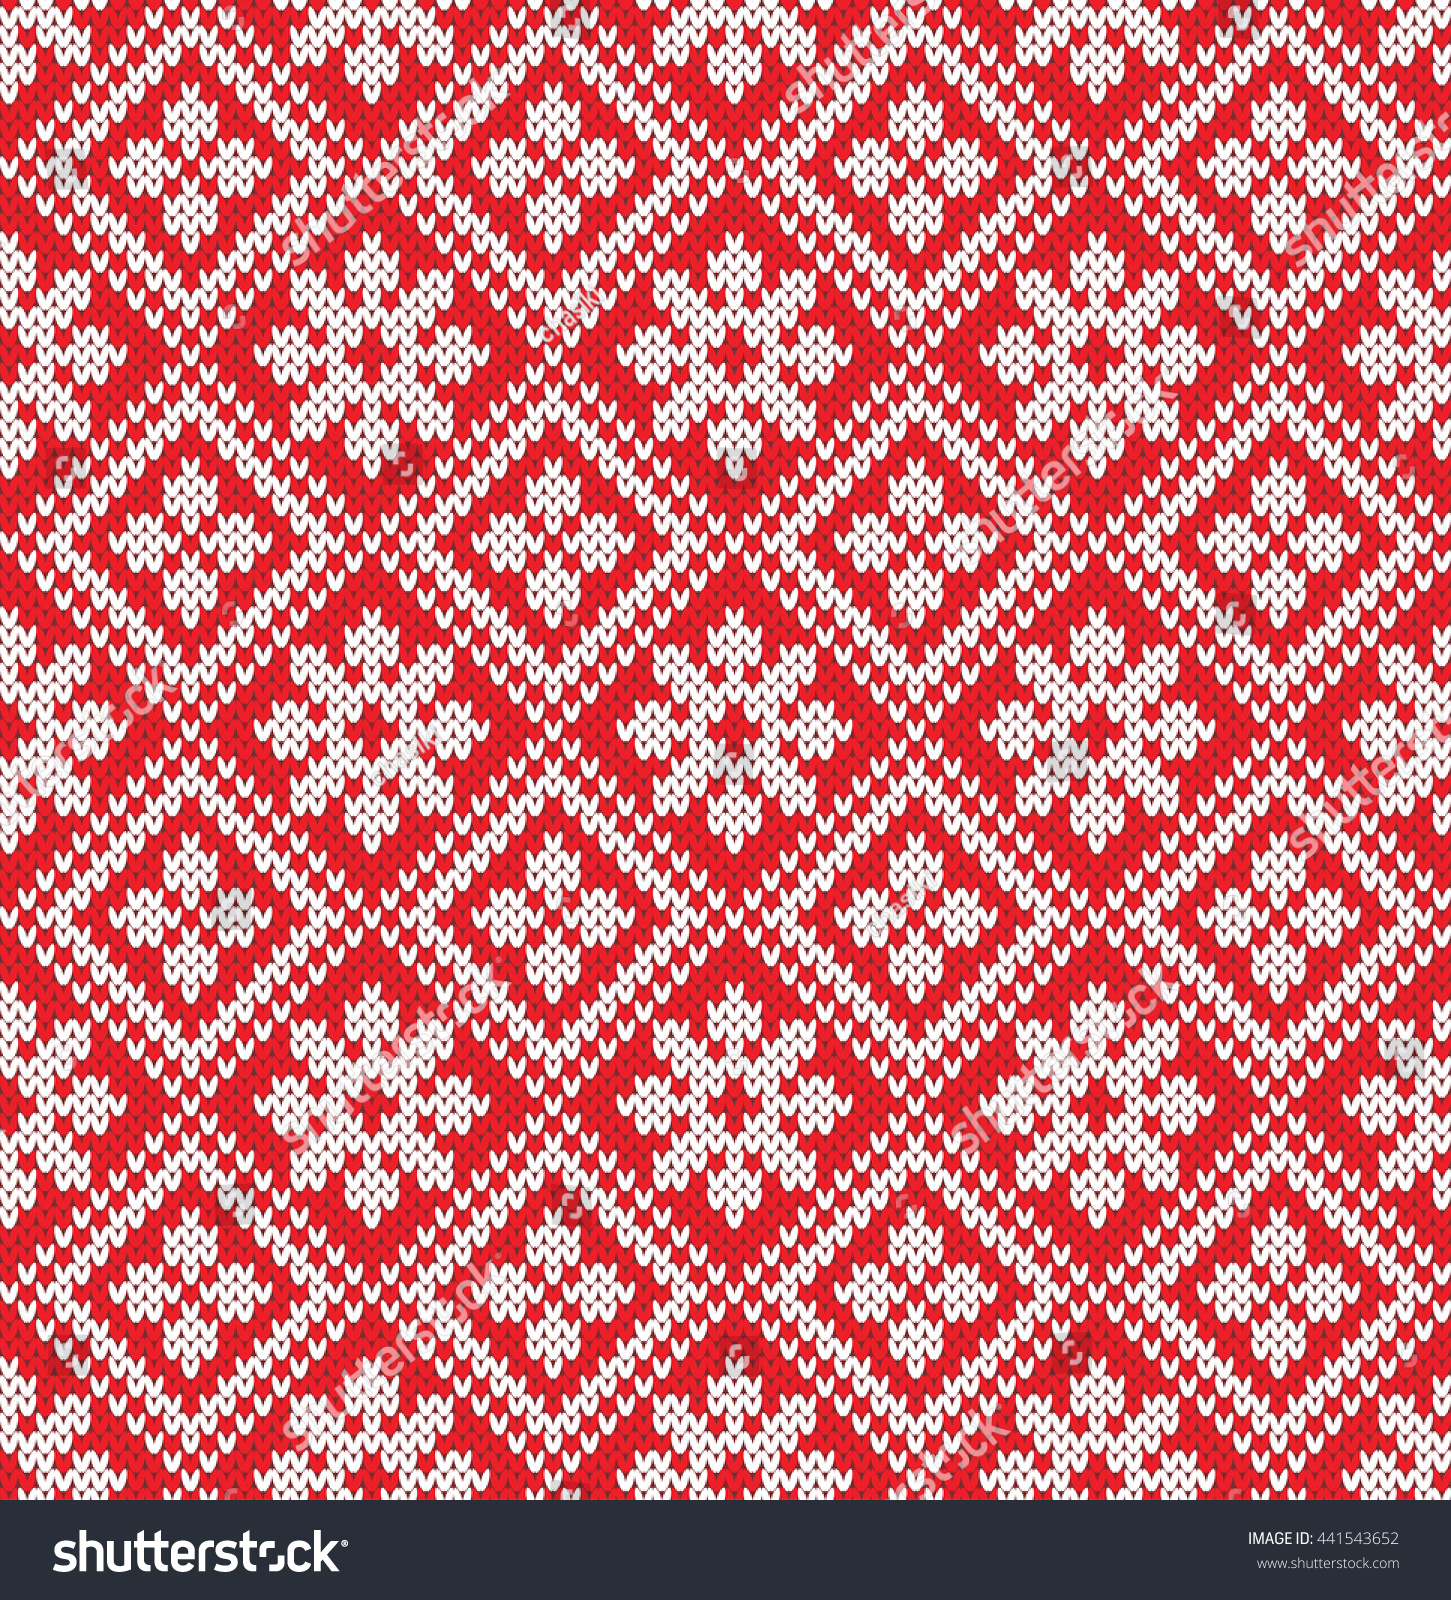 Norway Star Seamless Knitting Pattern Stock Vector HD (Royalty Free ...